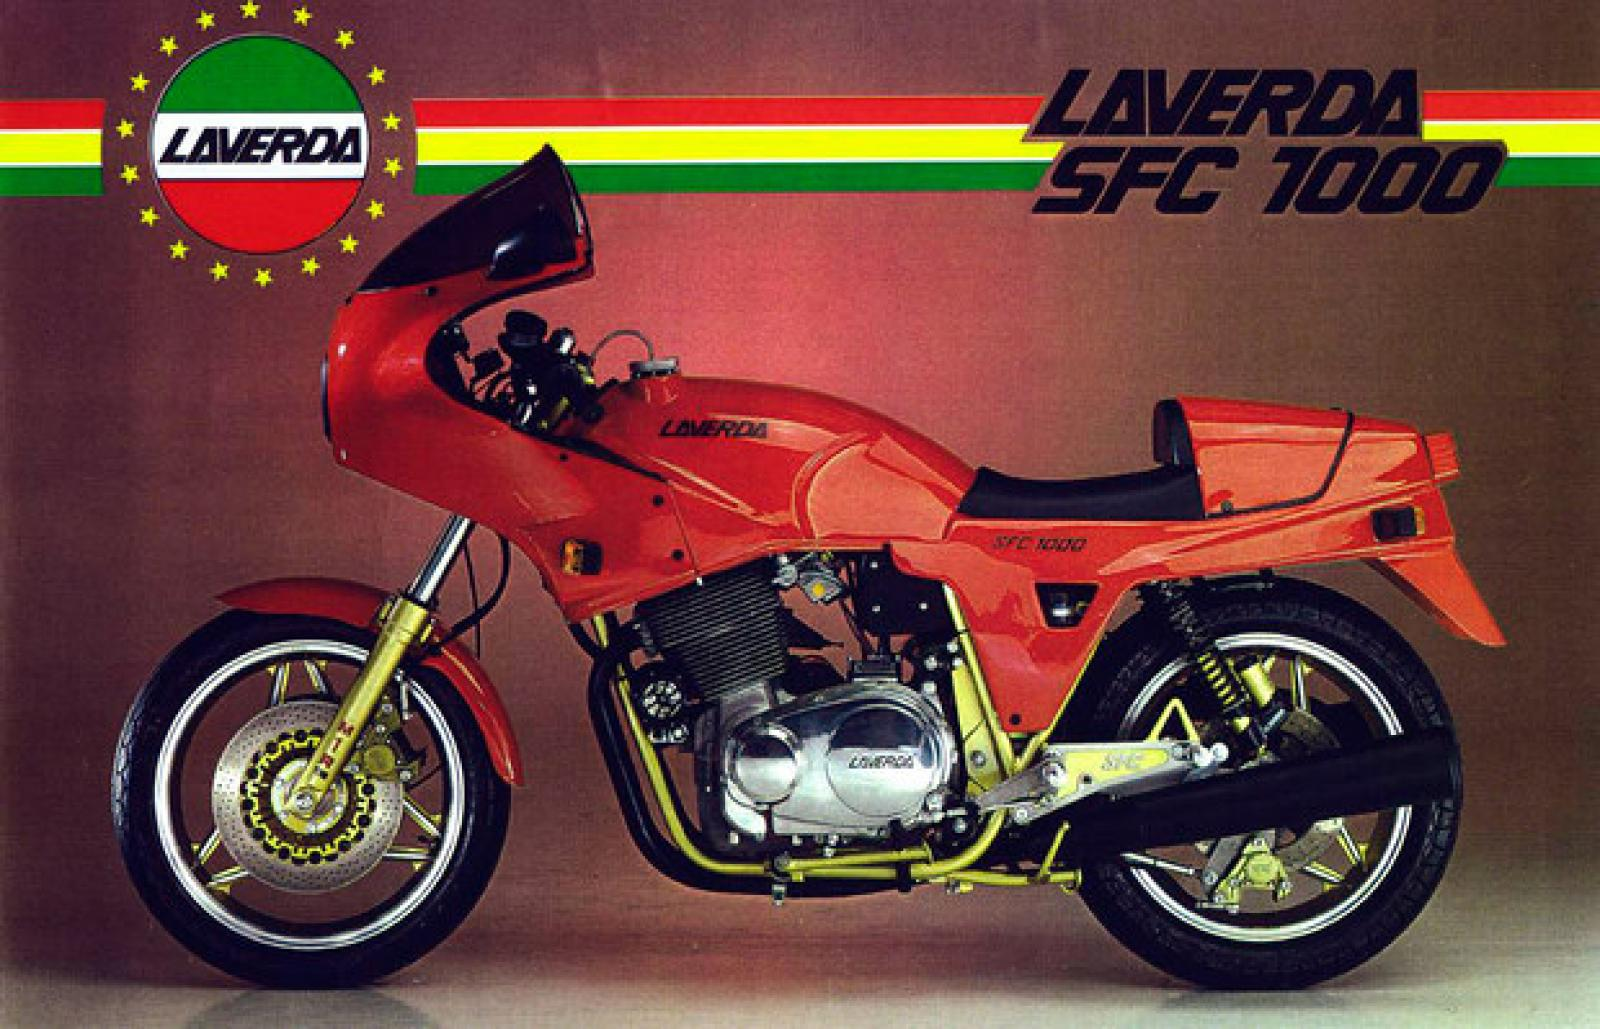 Laverda 1000 SFC wallpapers #144401